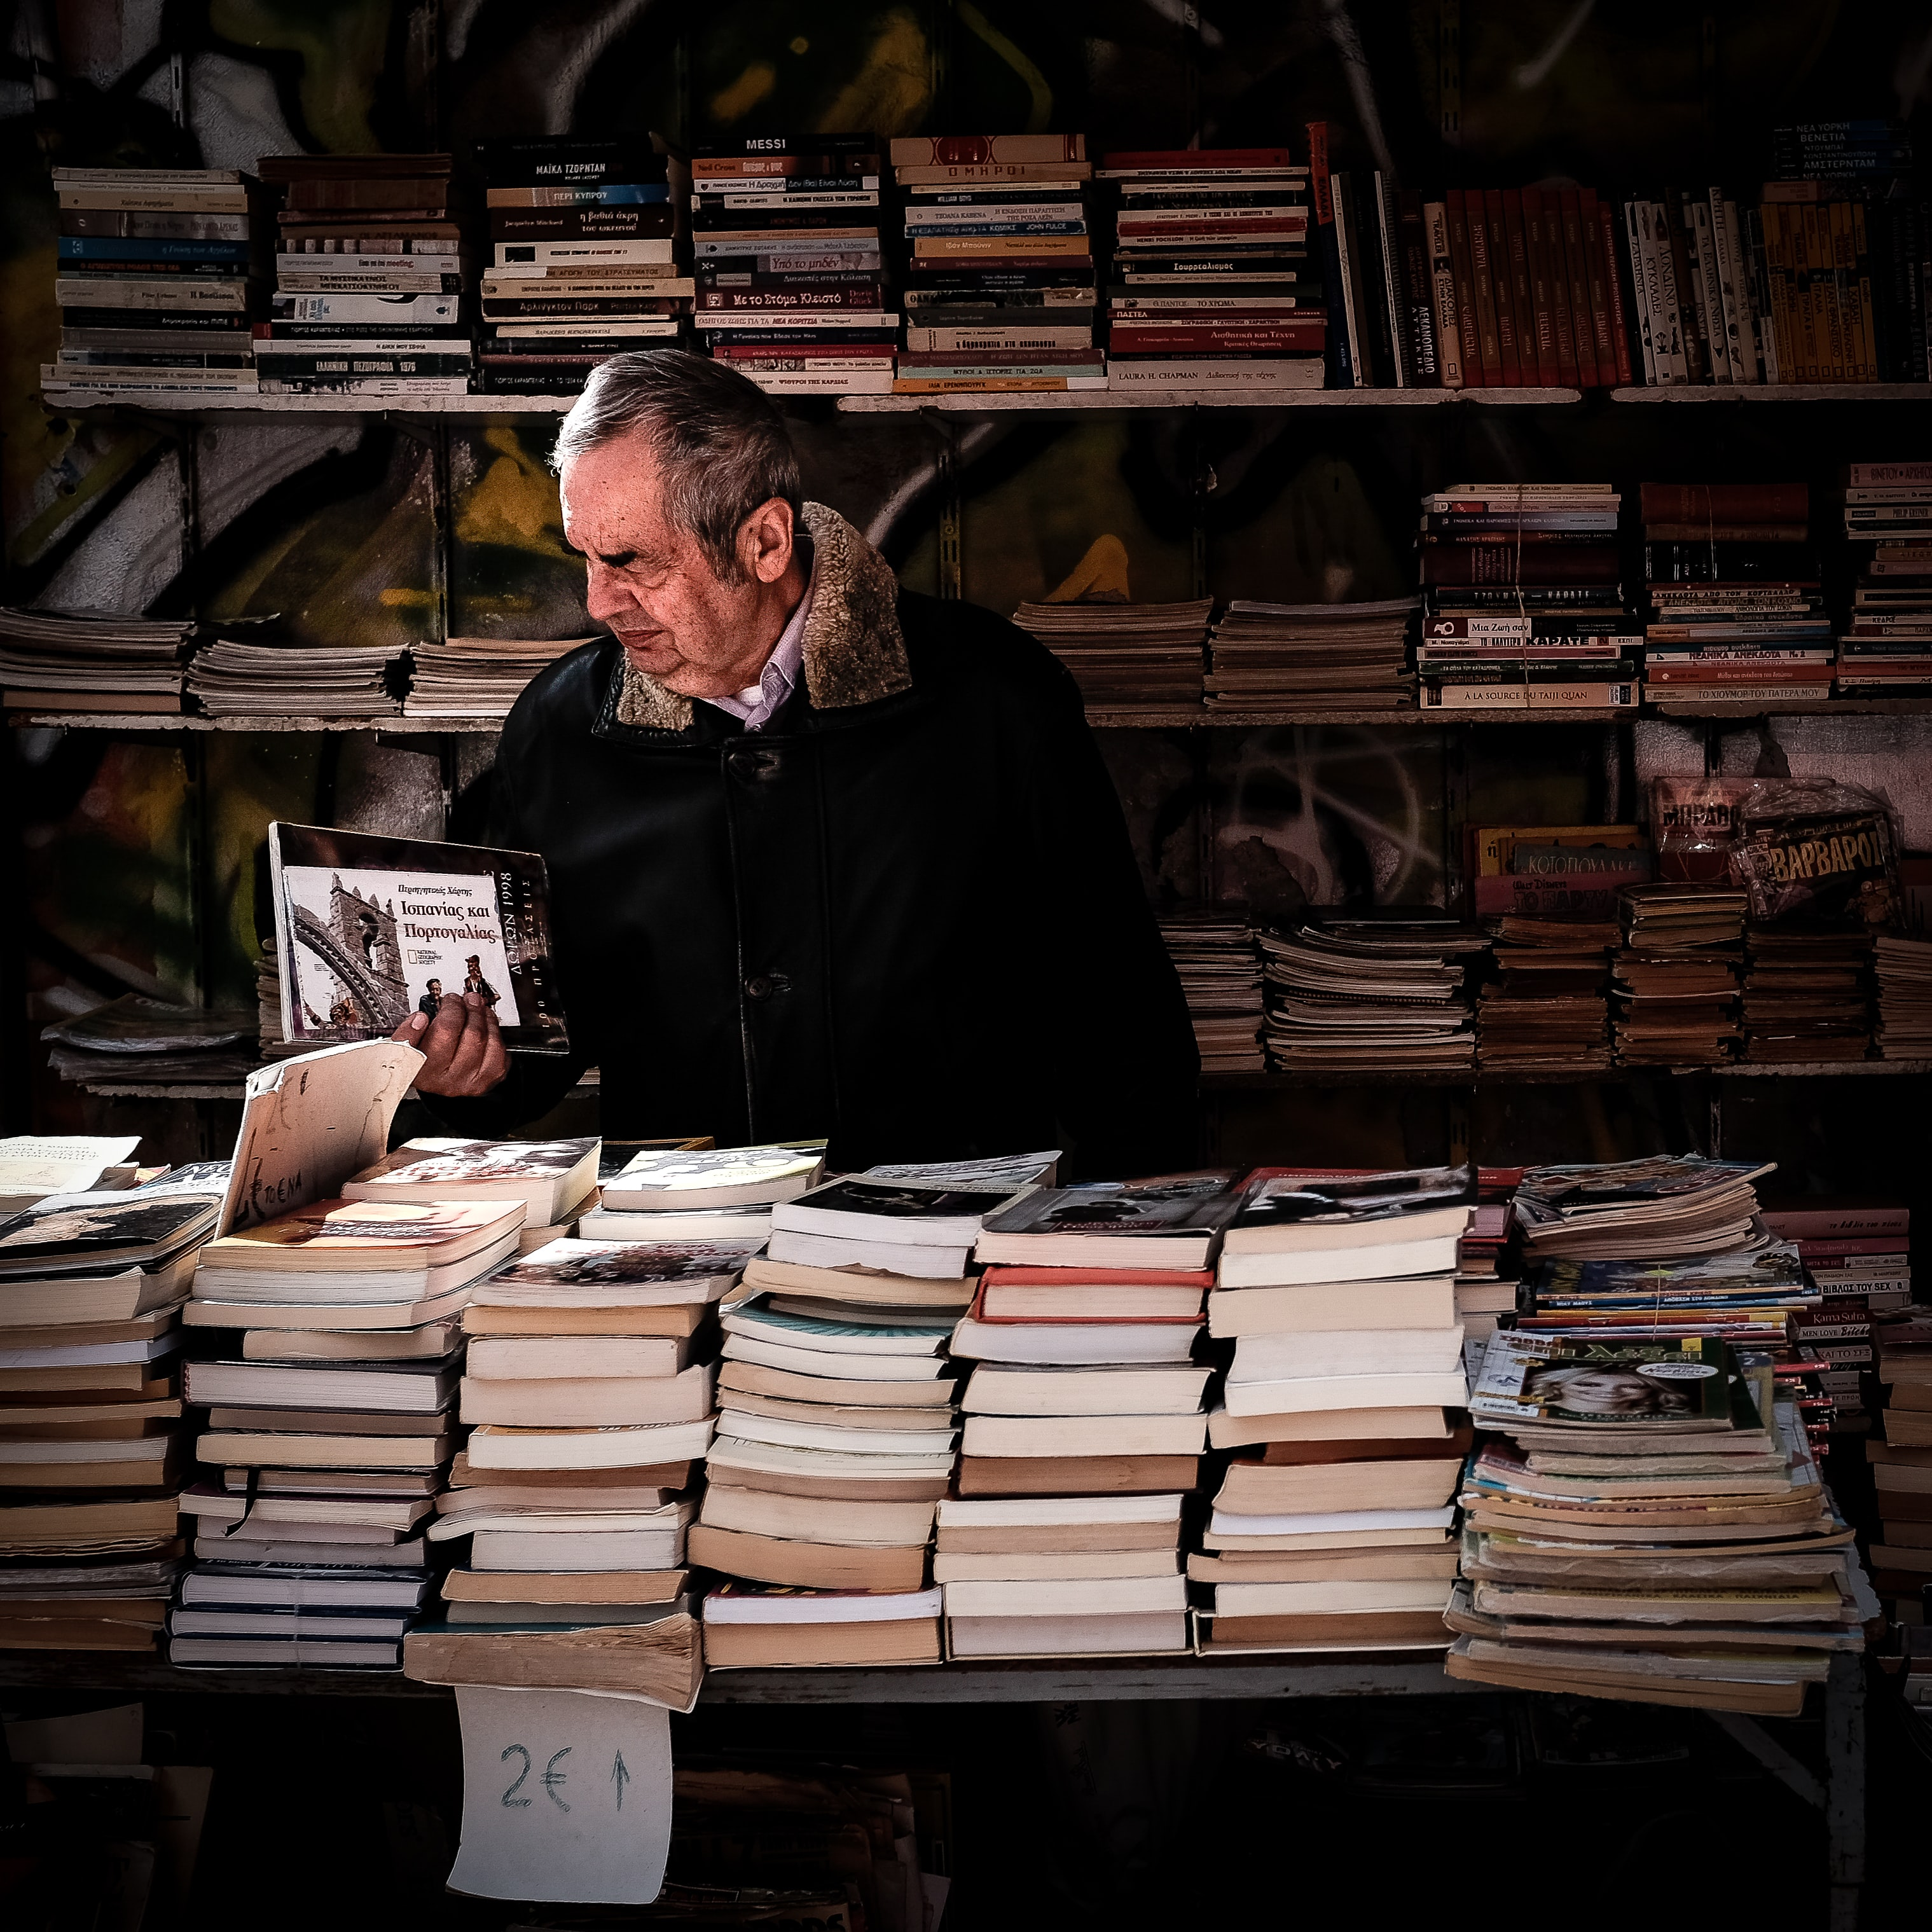 An elderly man browsing books in a bookstore in Athens